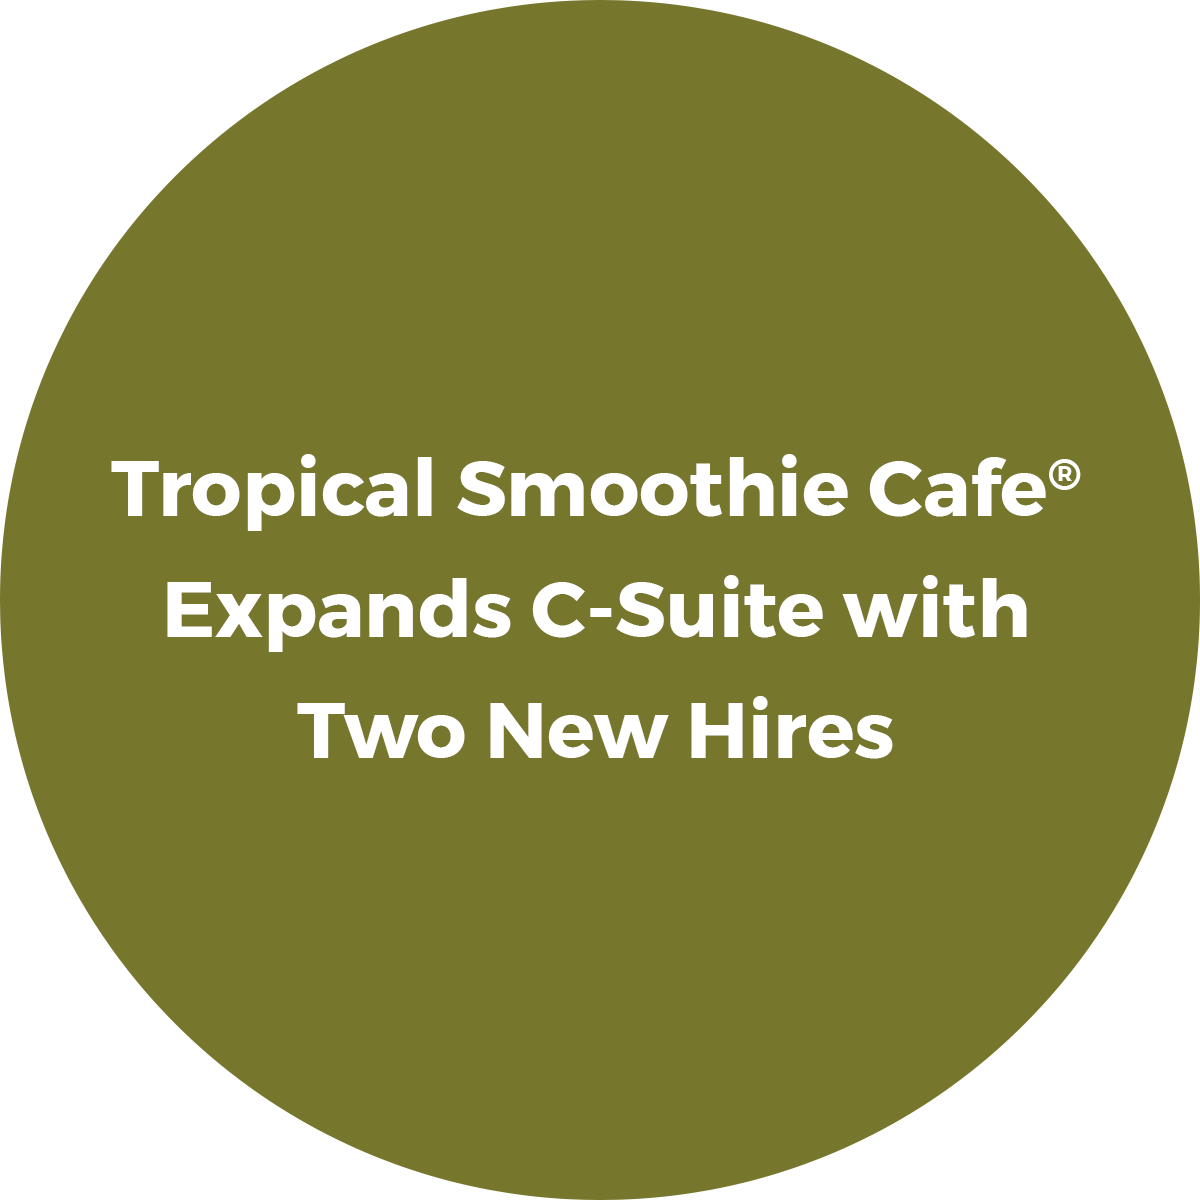 Tropical Smoothie Cafe Expands C-Suite with Two New Hires